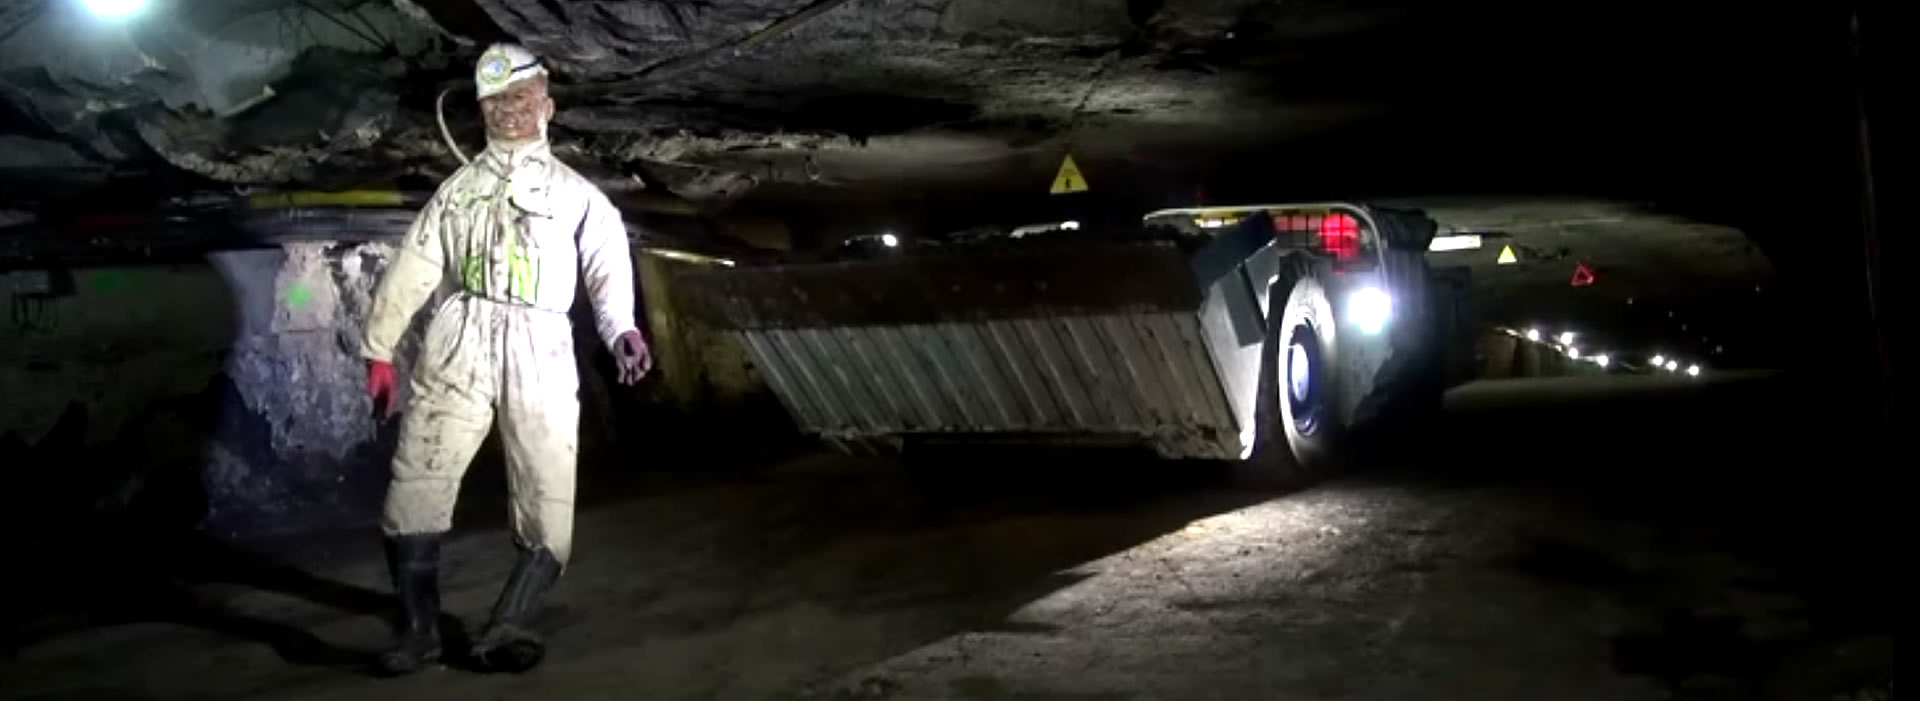 Underground Machinery Test with mannequin | A&R Engineering